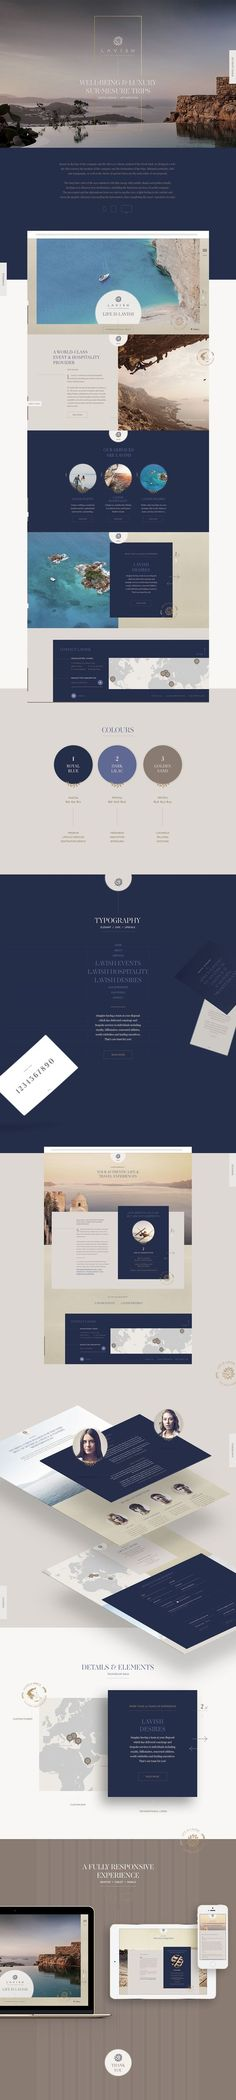 Lavish company has assigned us to design its online communication, namely a website that conveys planning sur-mesure trips of well-being and luxury.Based on the logo of the company and the olive as a classic symbol of the Greek land, we designed a websi…: